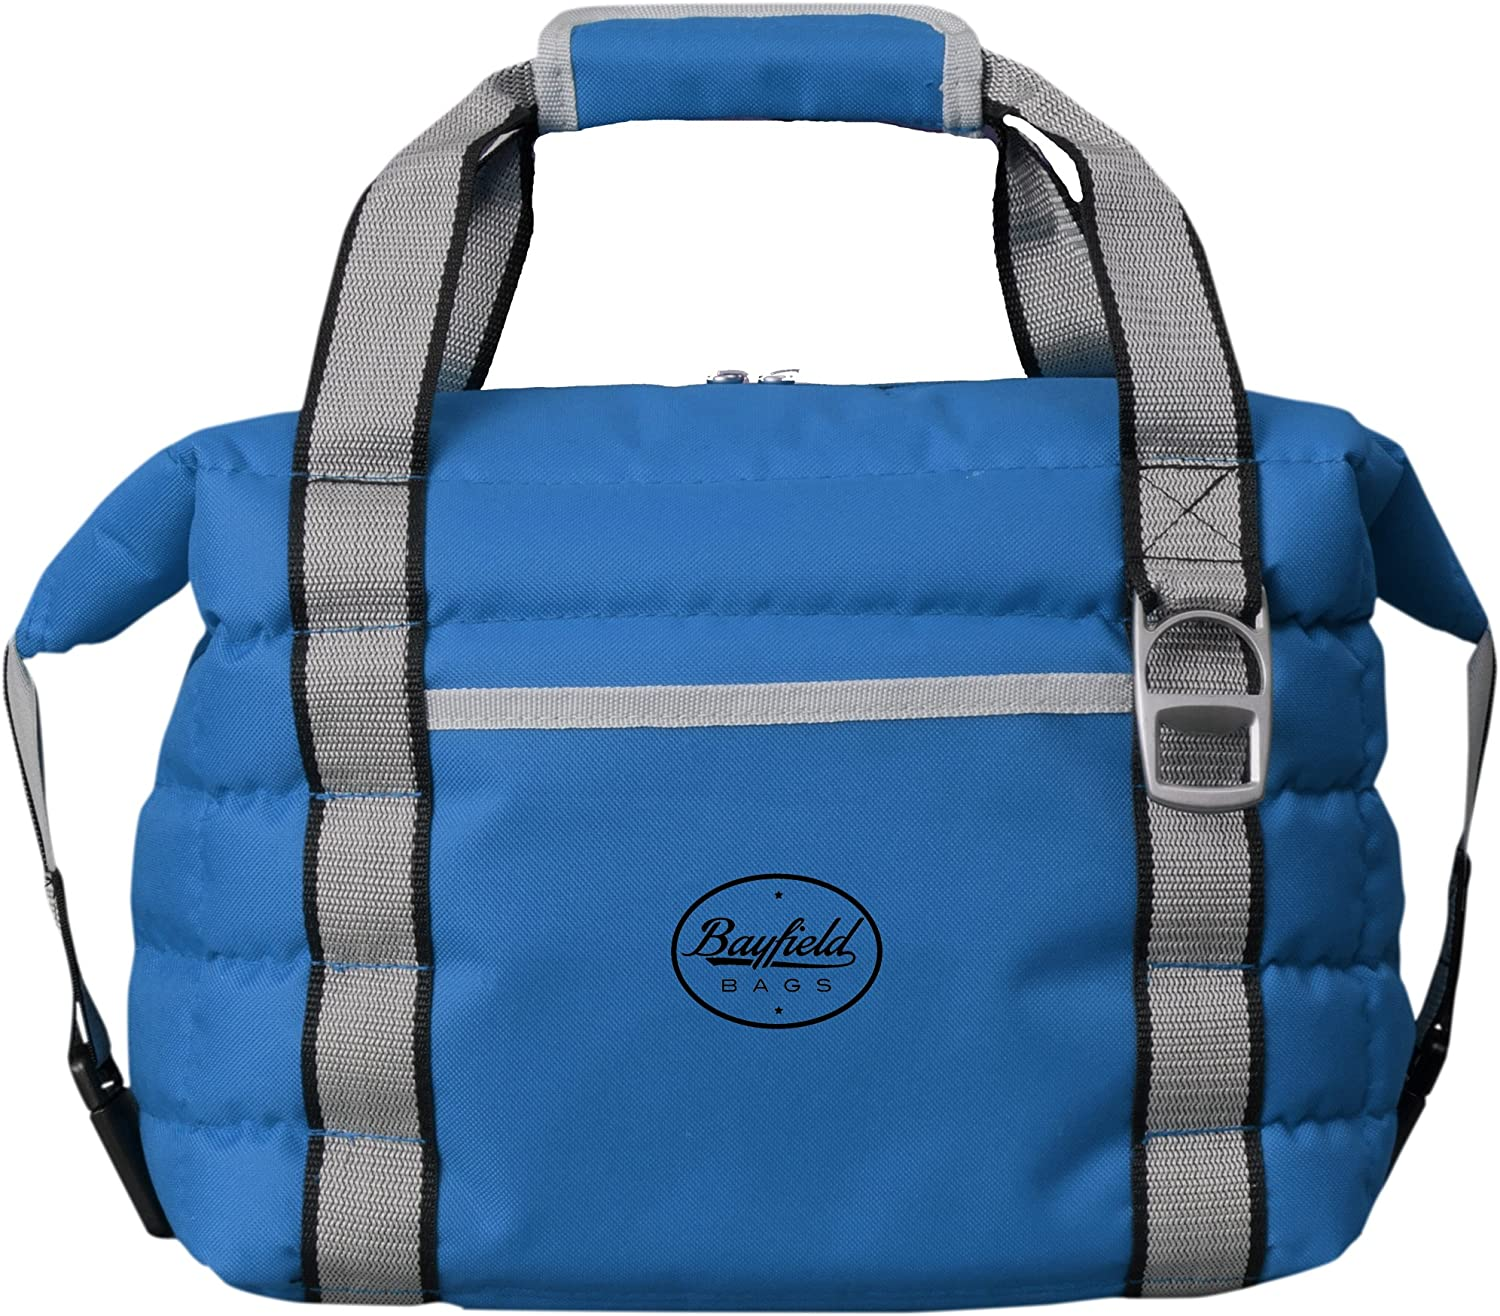 Soft Cooler Bag BougeRV 30 Cans Leakproof Soft Sided Portable Cooler Bag,2 Days Retention Cooler Tote with Bottle Opener for Lunch Beach Camping Picnic Kayak Day Trip Blue